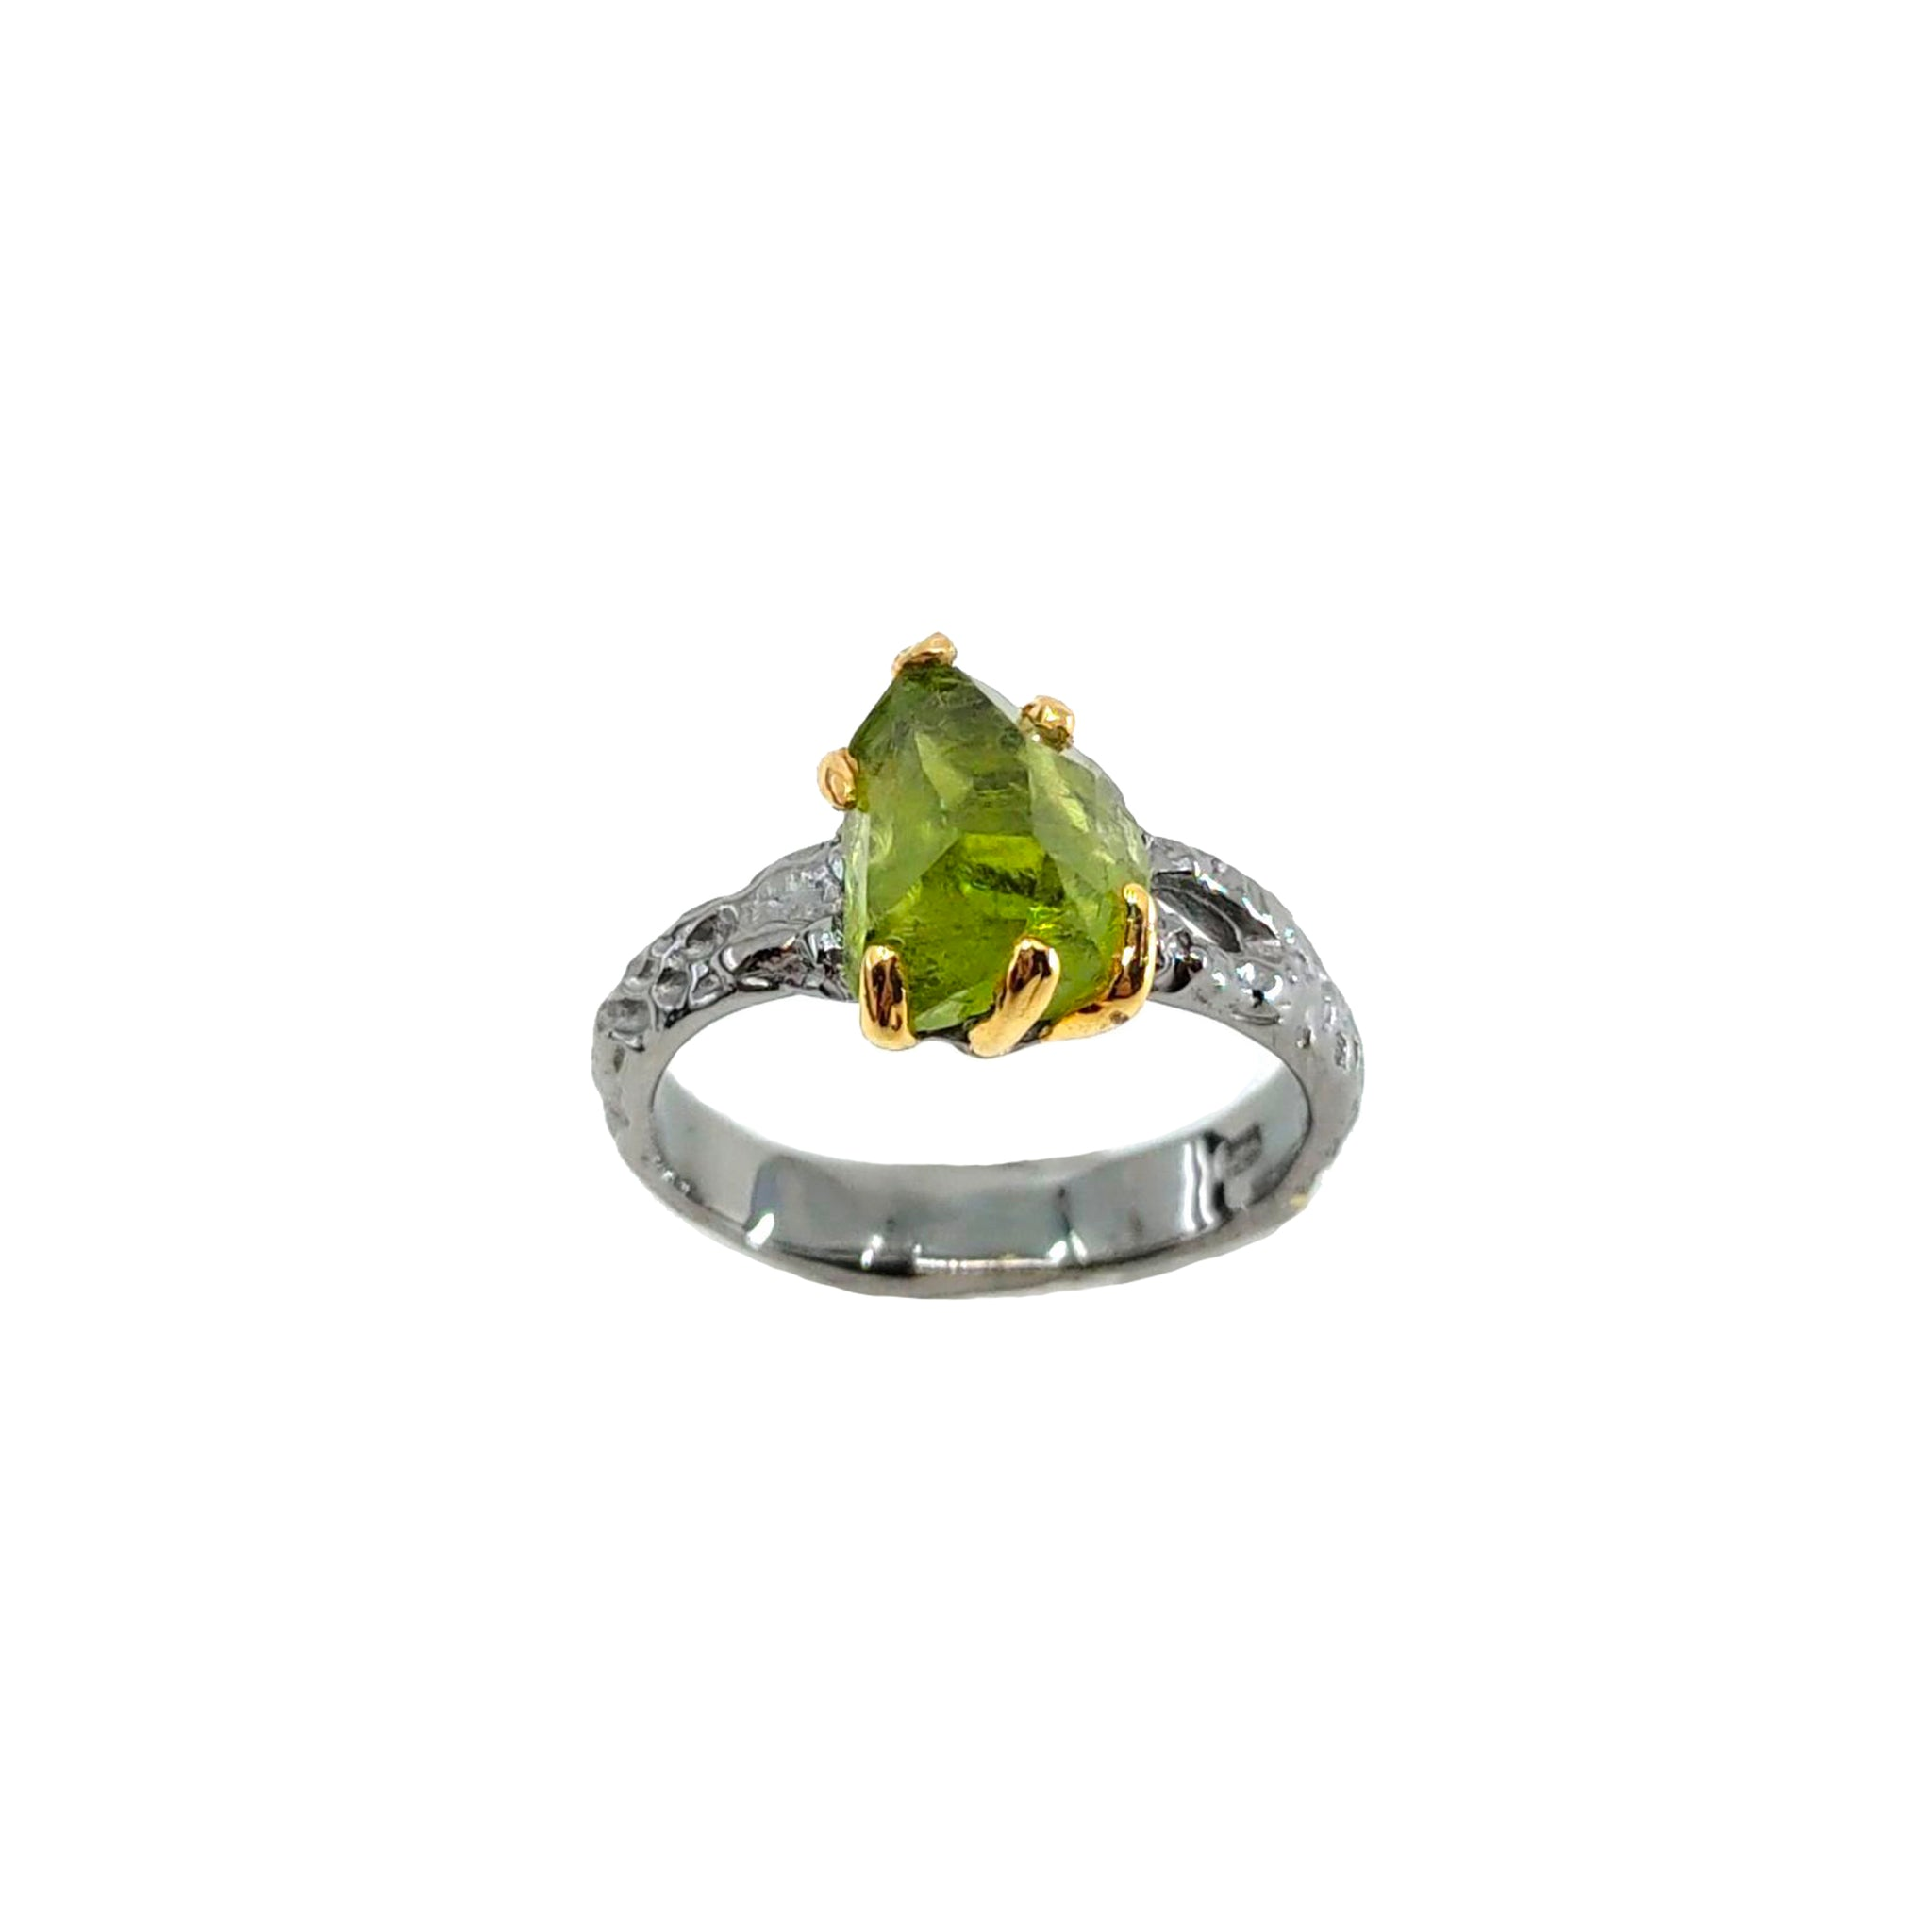 Rough Stone - 925 Sterling Silver Ring, Rough Faceted Peridot, Plated with 3 Micron 22K Yellow Gold and Grey Ruthenium